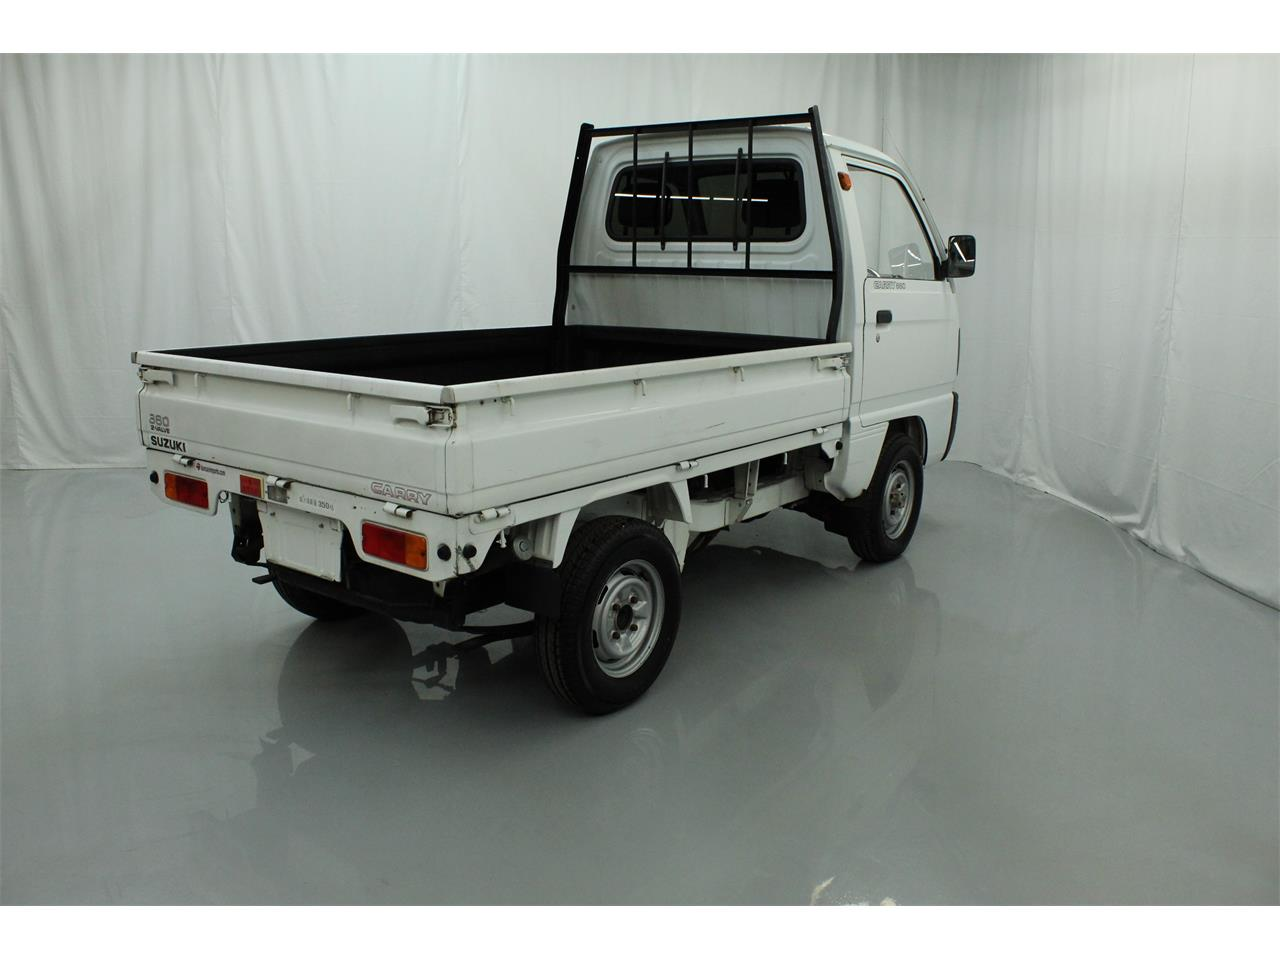 1990 Suzuki Carry for sale in Christiansburg, VA – photo 9